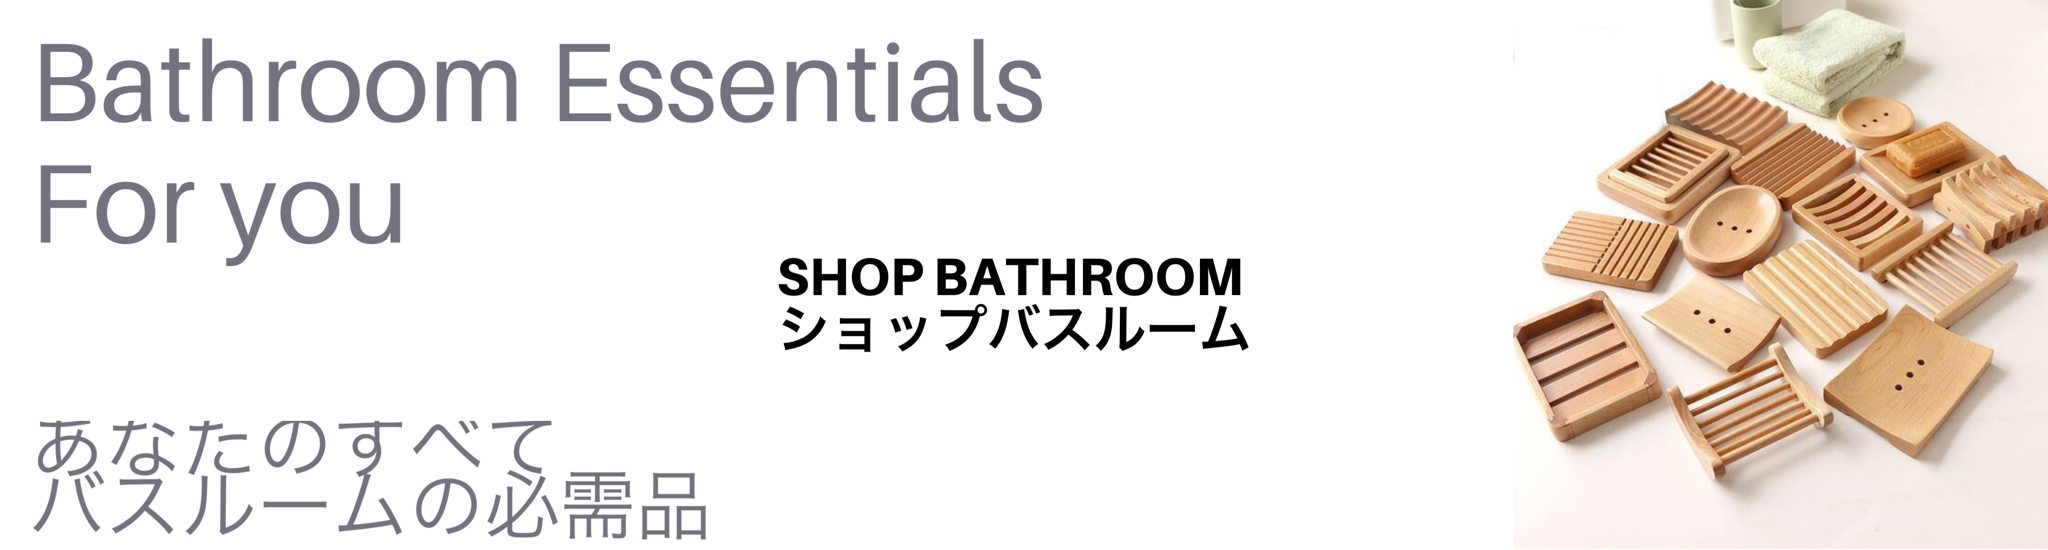 miTeigi Bathroom Collection | Japanese Apparel and Home Decor Retail Shopping